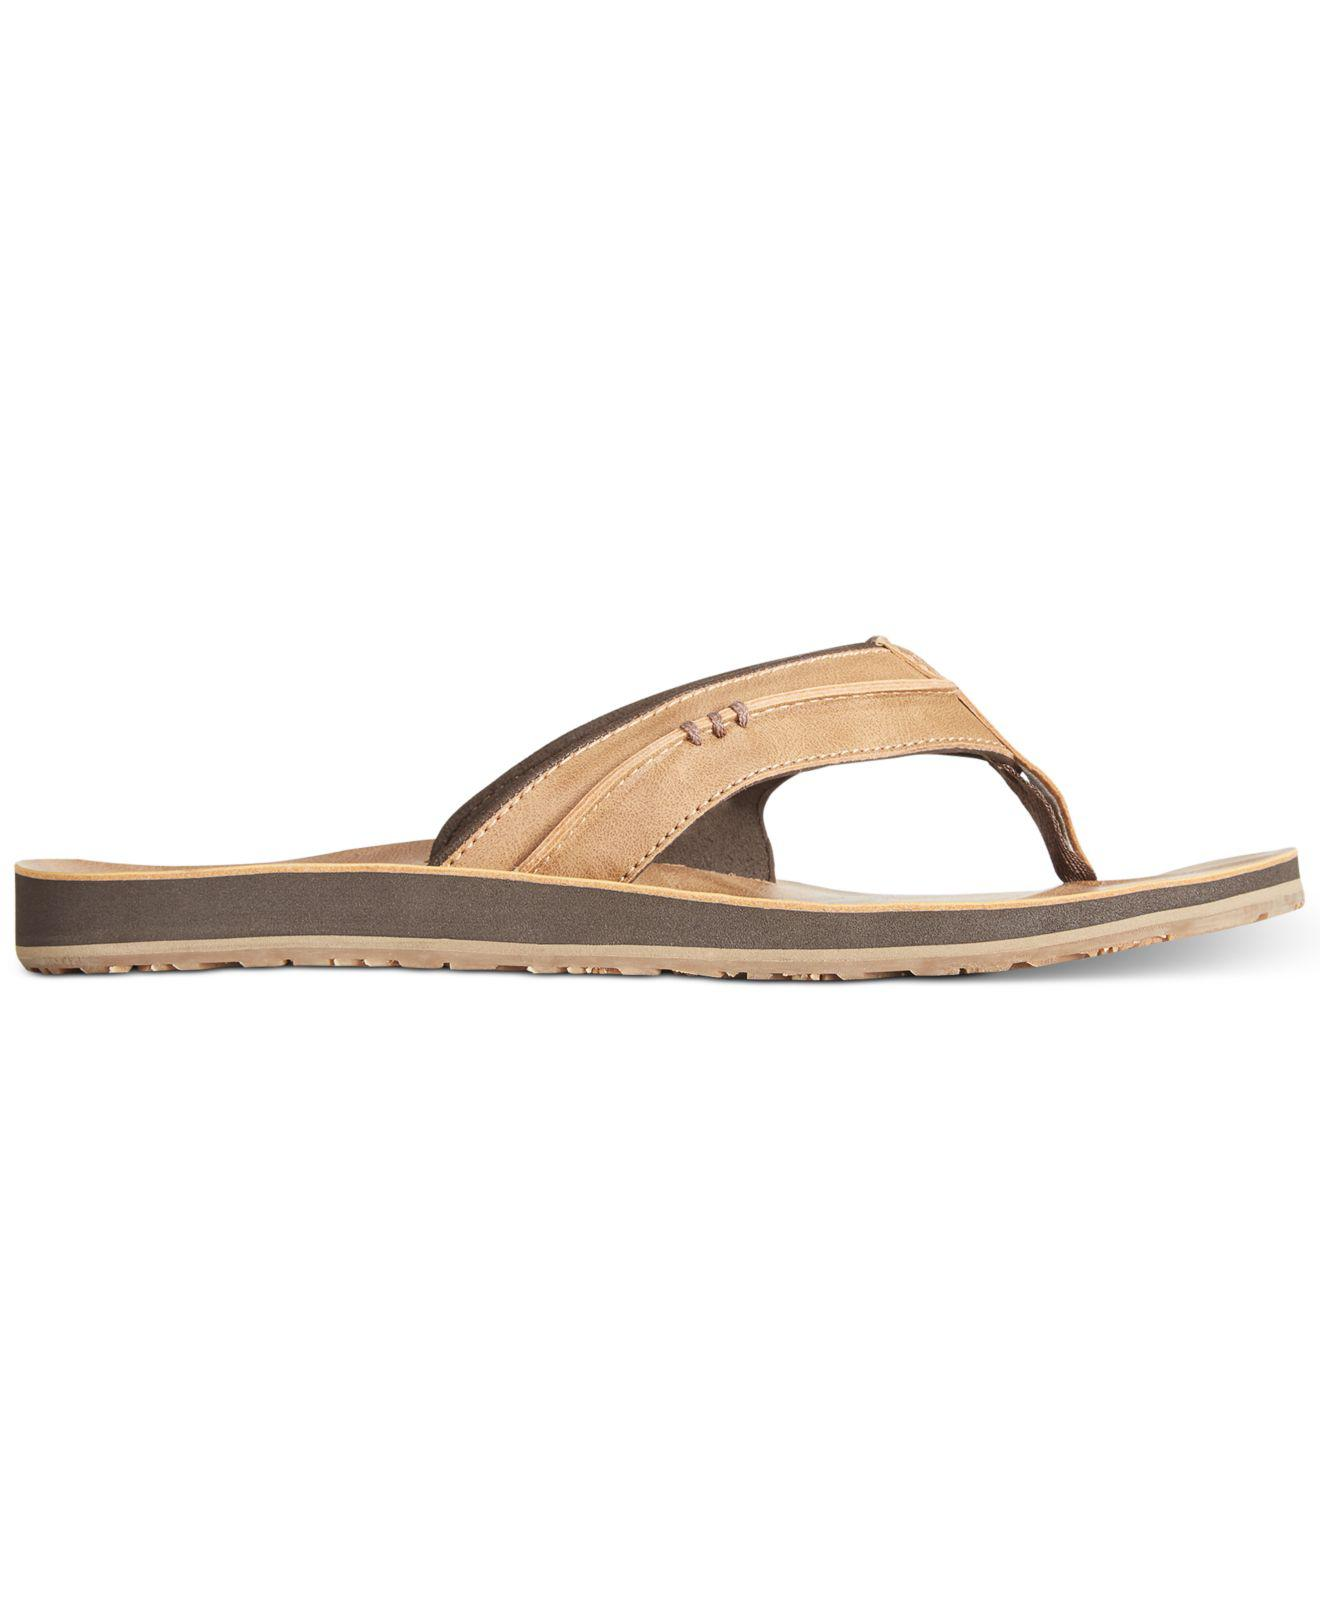 a145c660267509 Reef Marbea Sl Tan Sandals in Brown for Men - Lyst